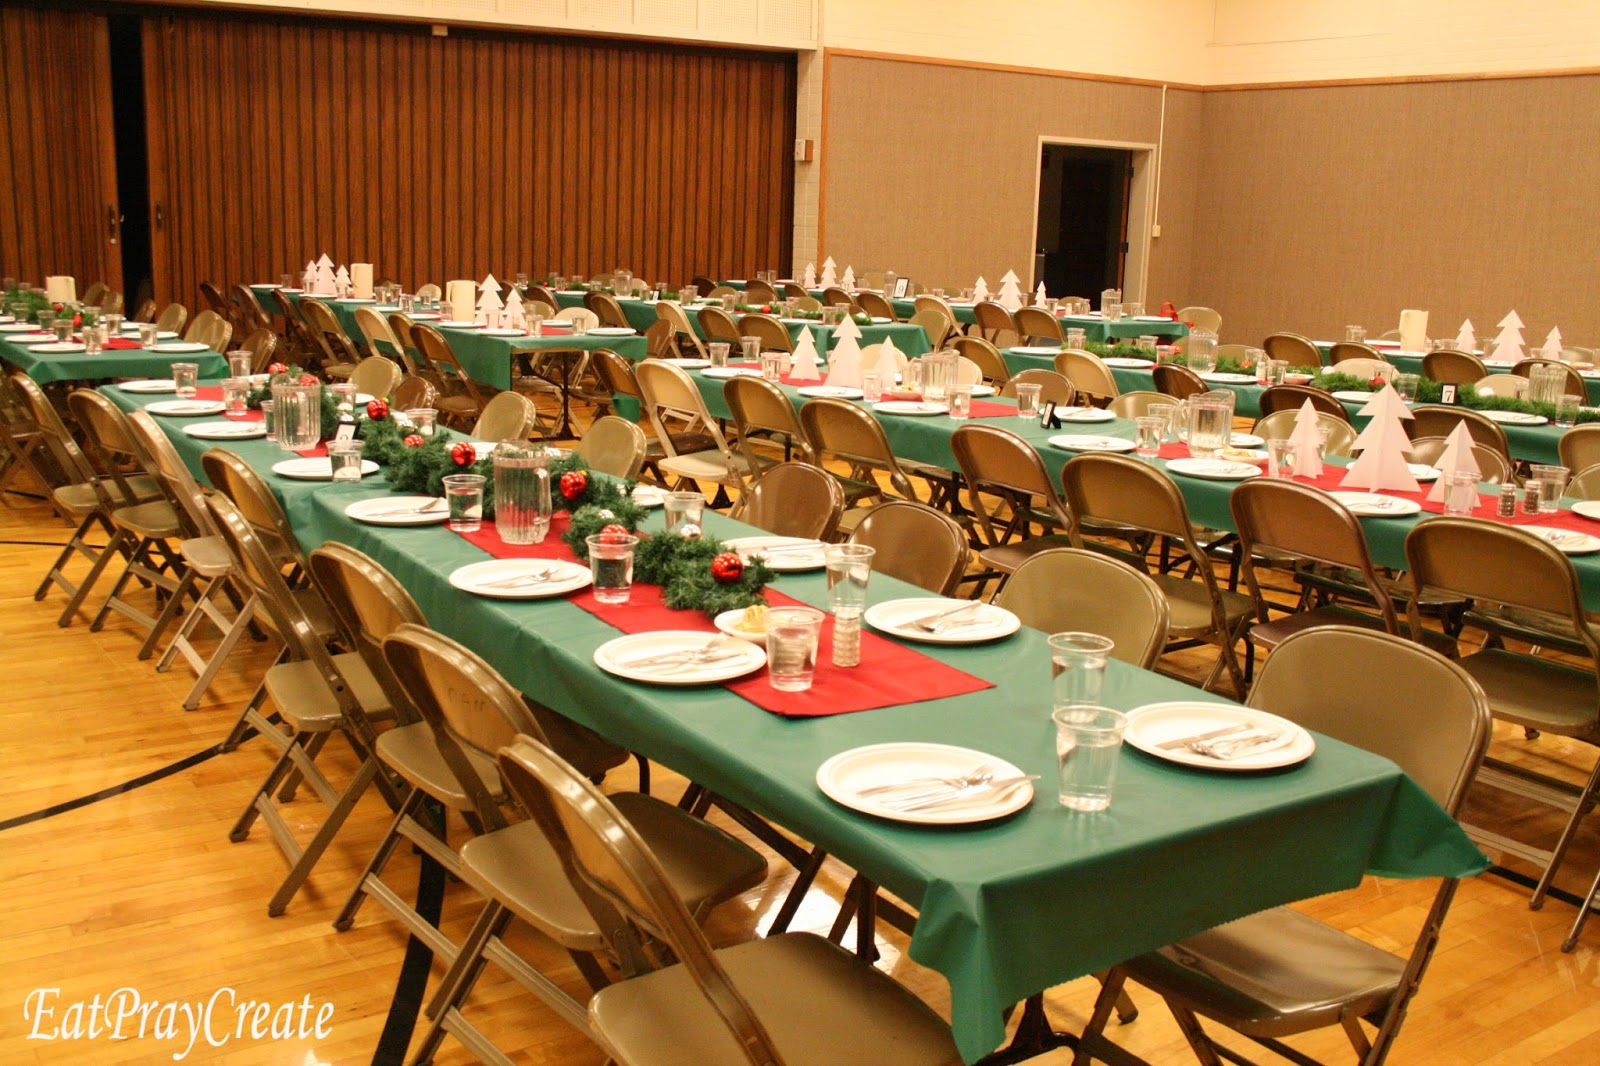 Christmas Decorations For Church Dinner